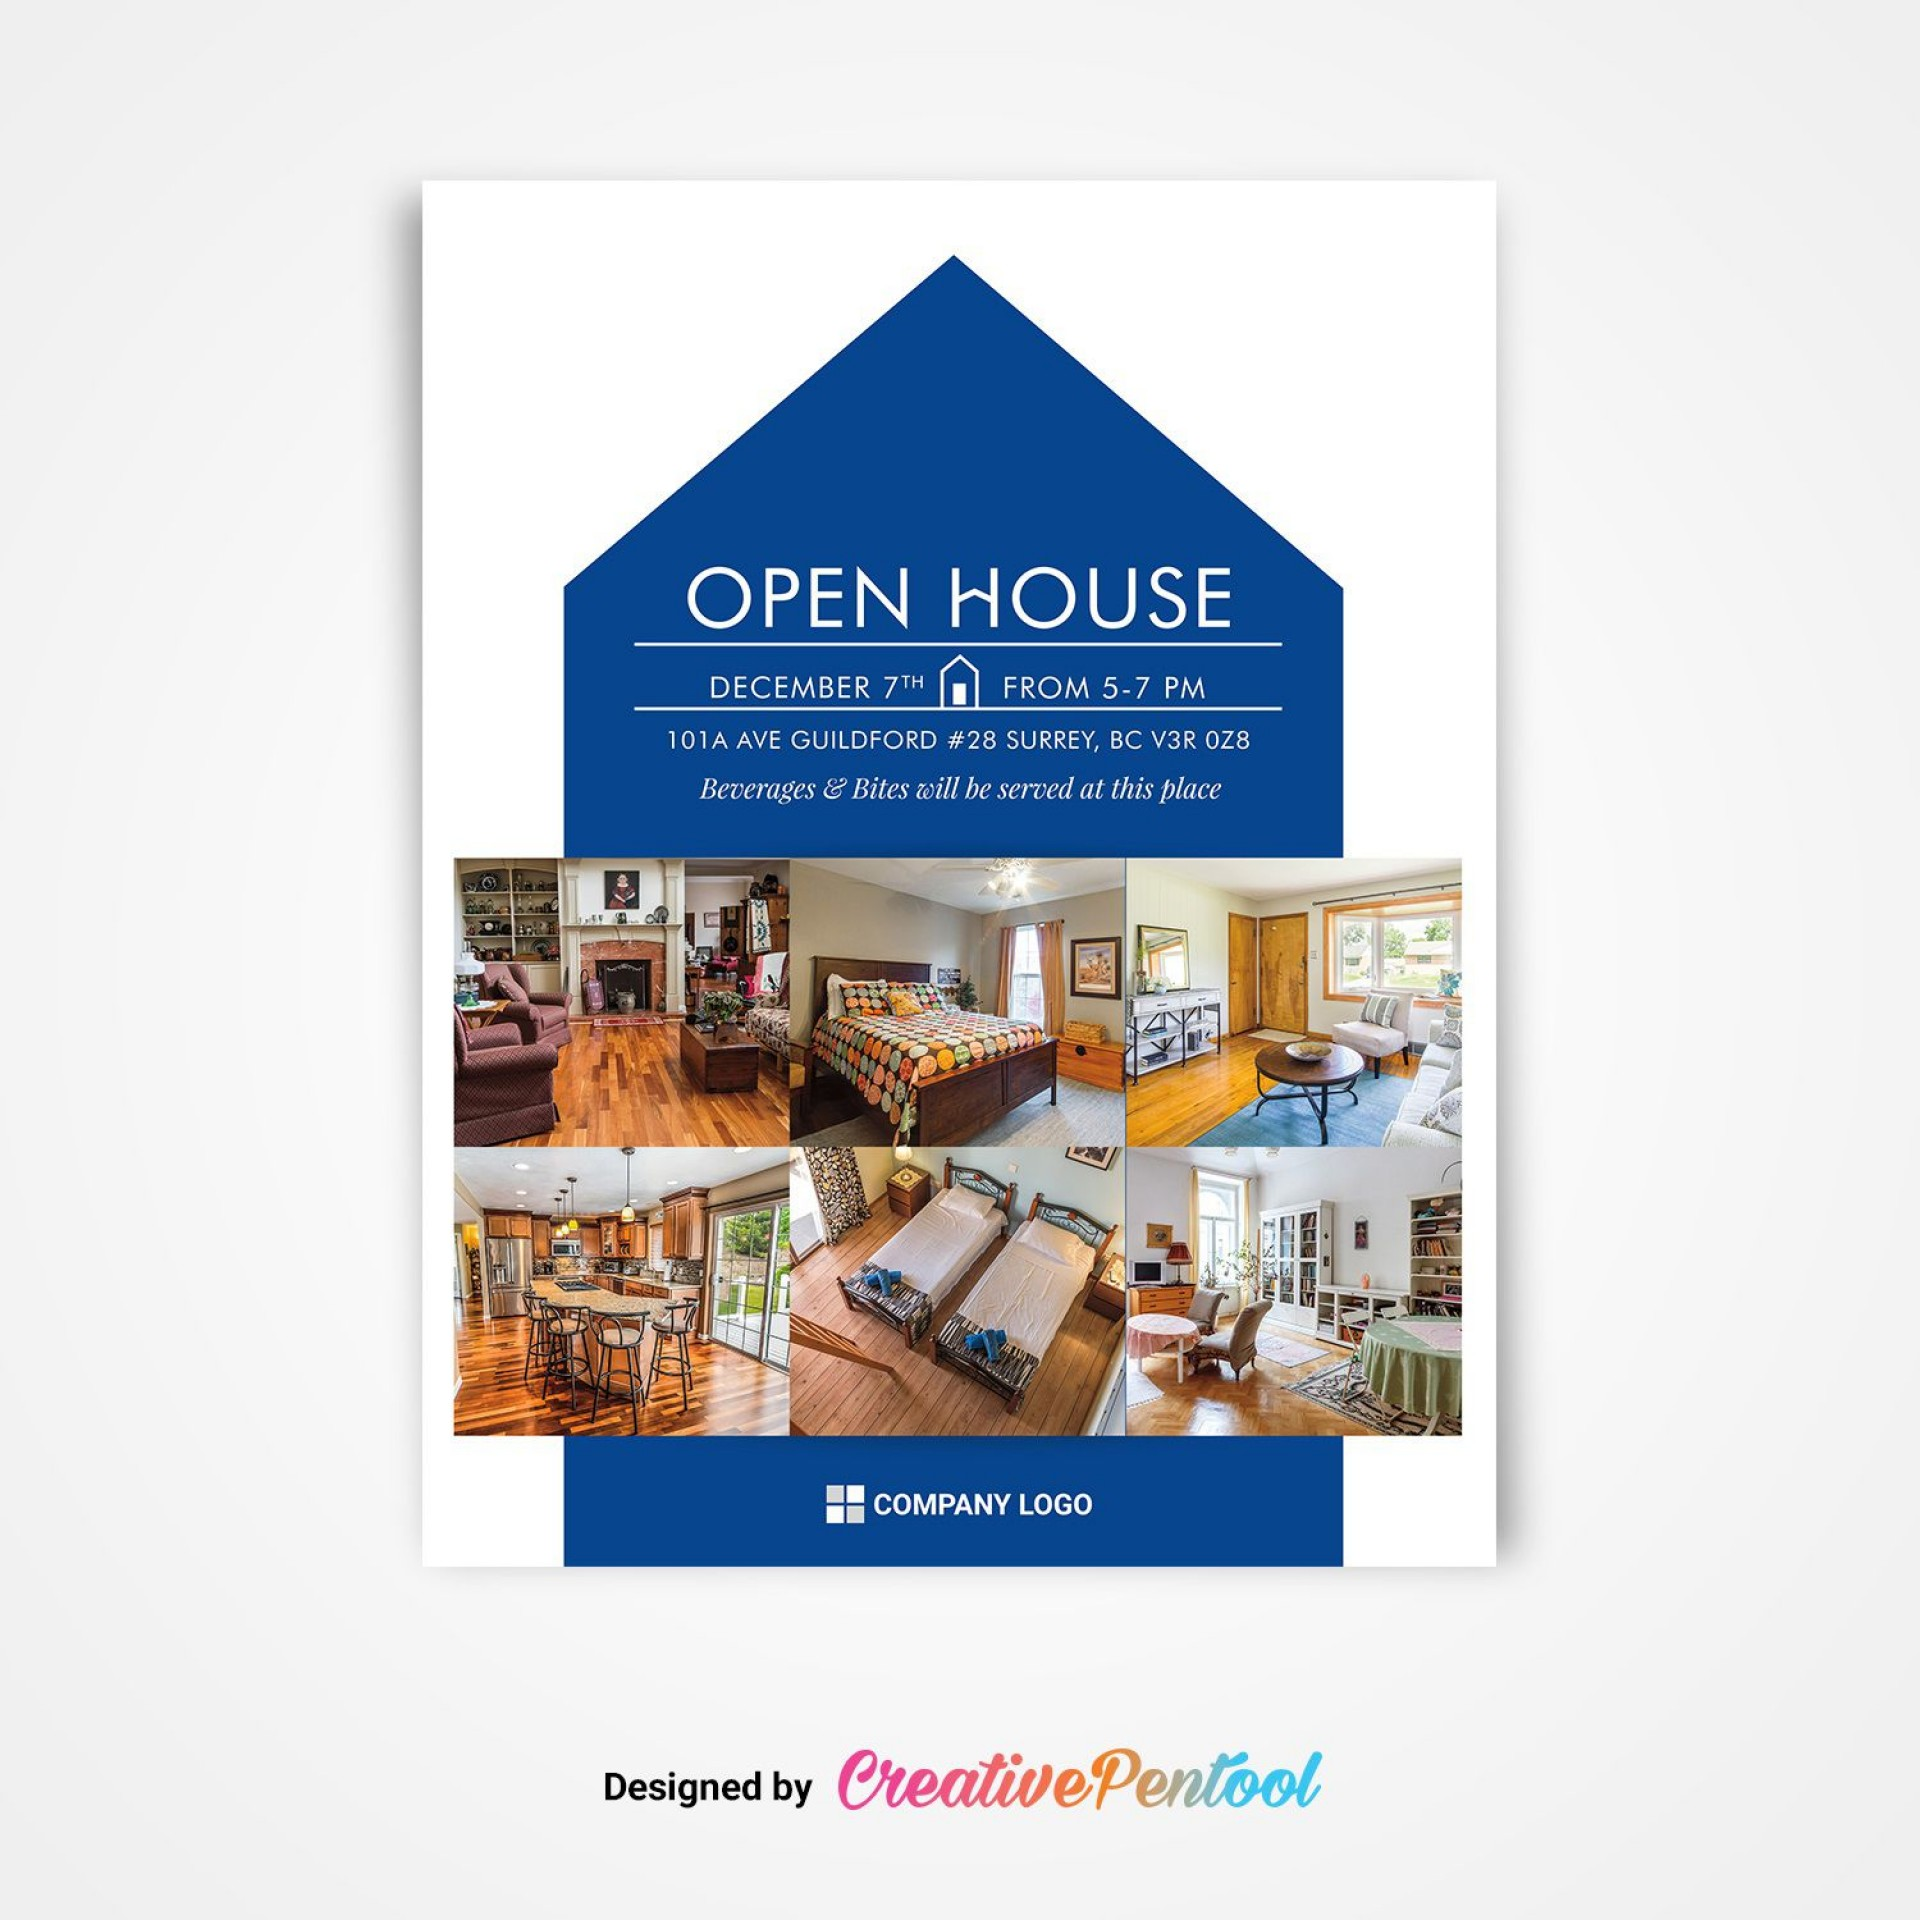 005 Simple Free Open House Flyer Template High Def  Microsoft Word1920